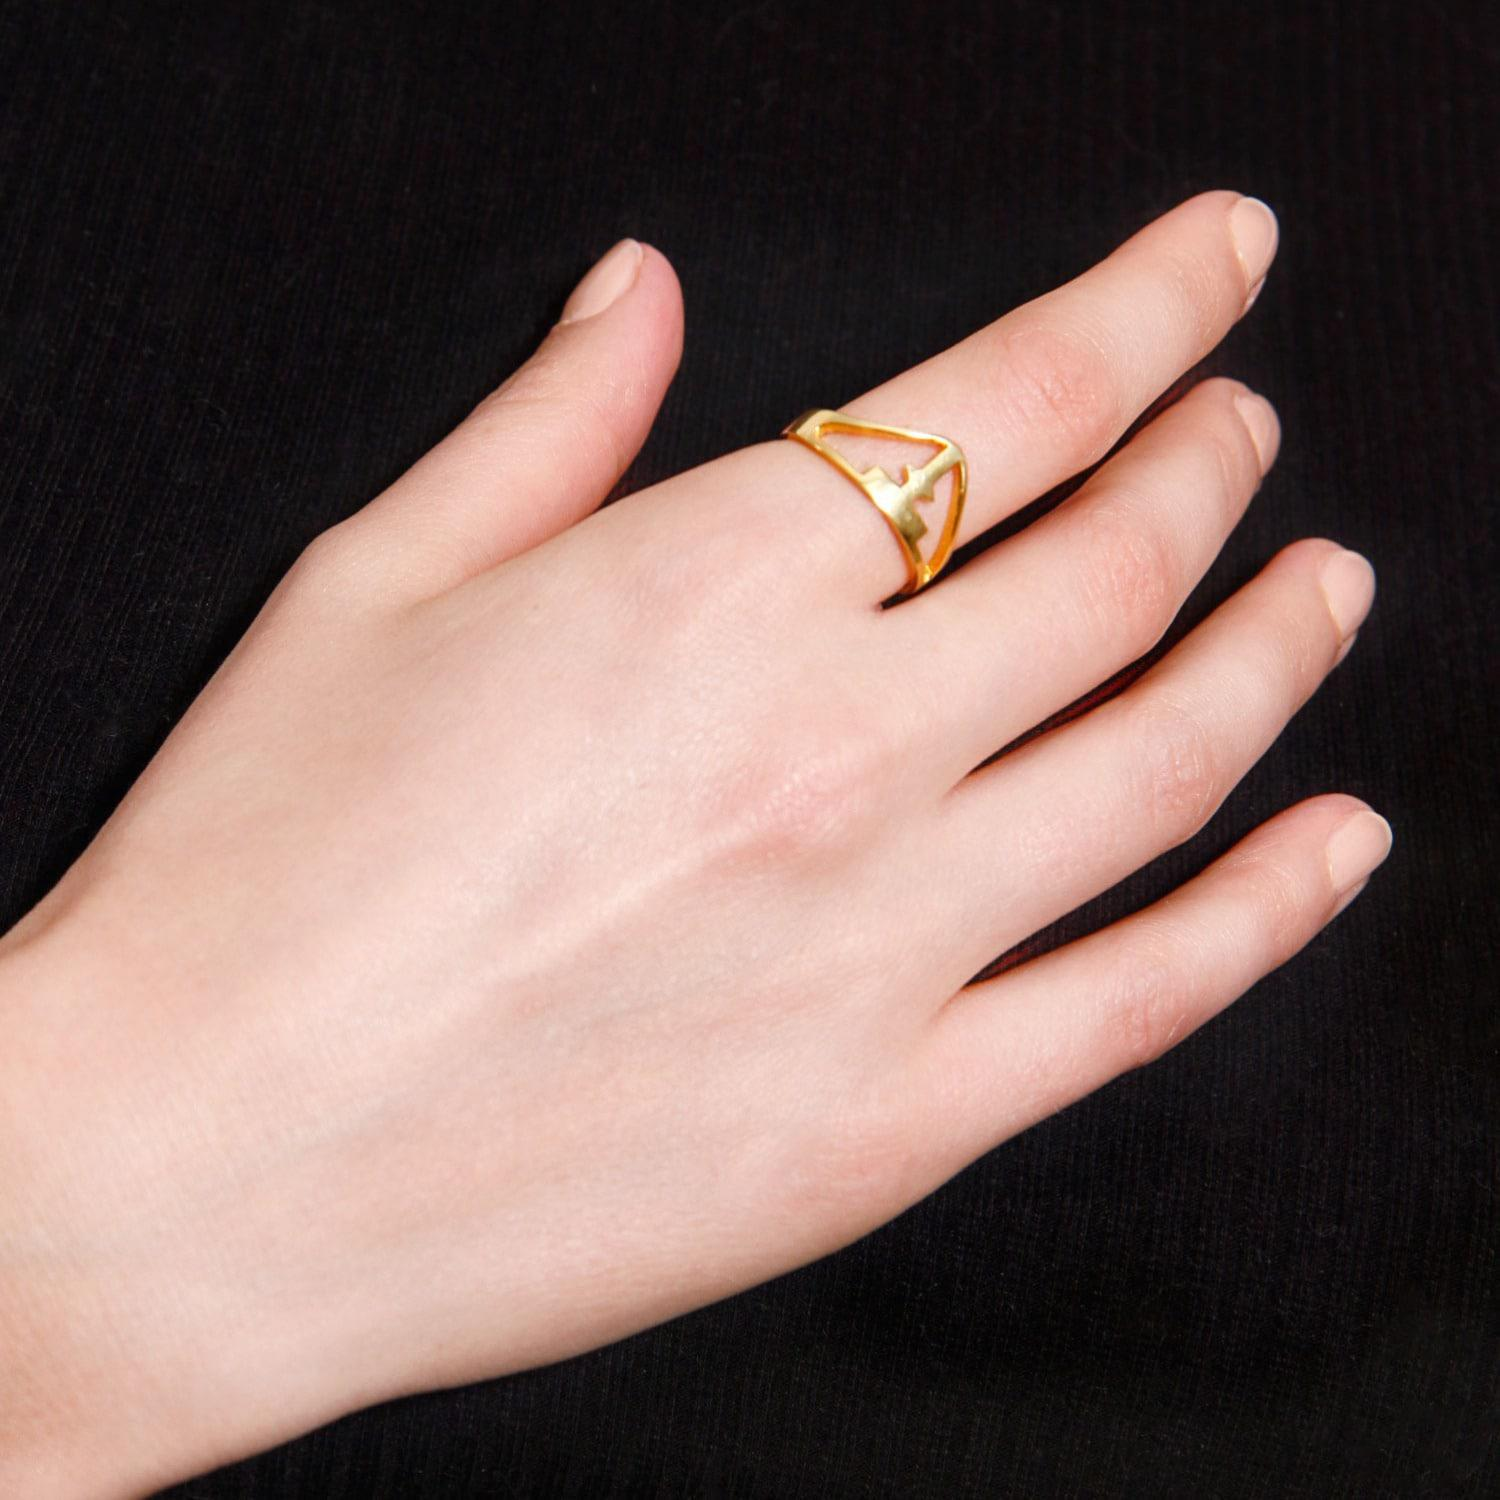 Lyst - Tissuville All About The T Ring Gold in Metallic